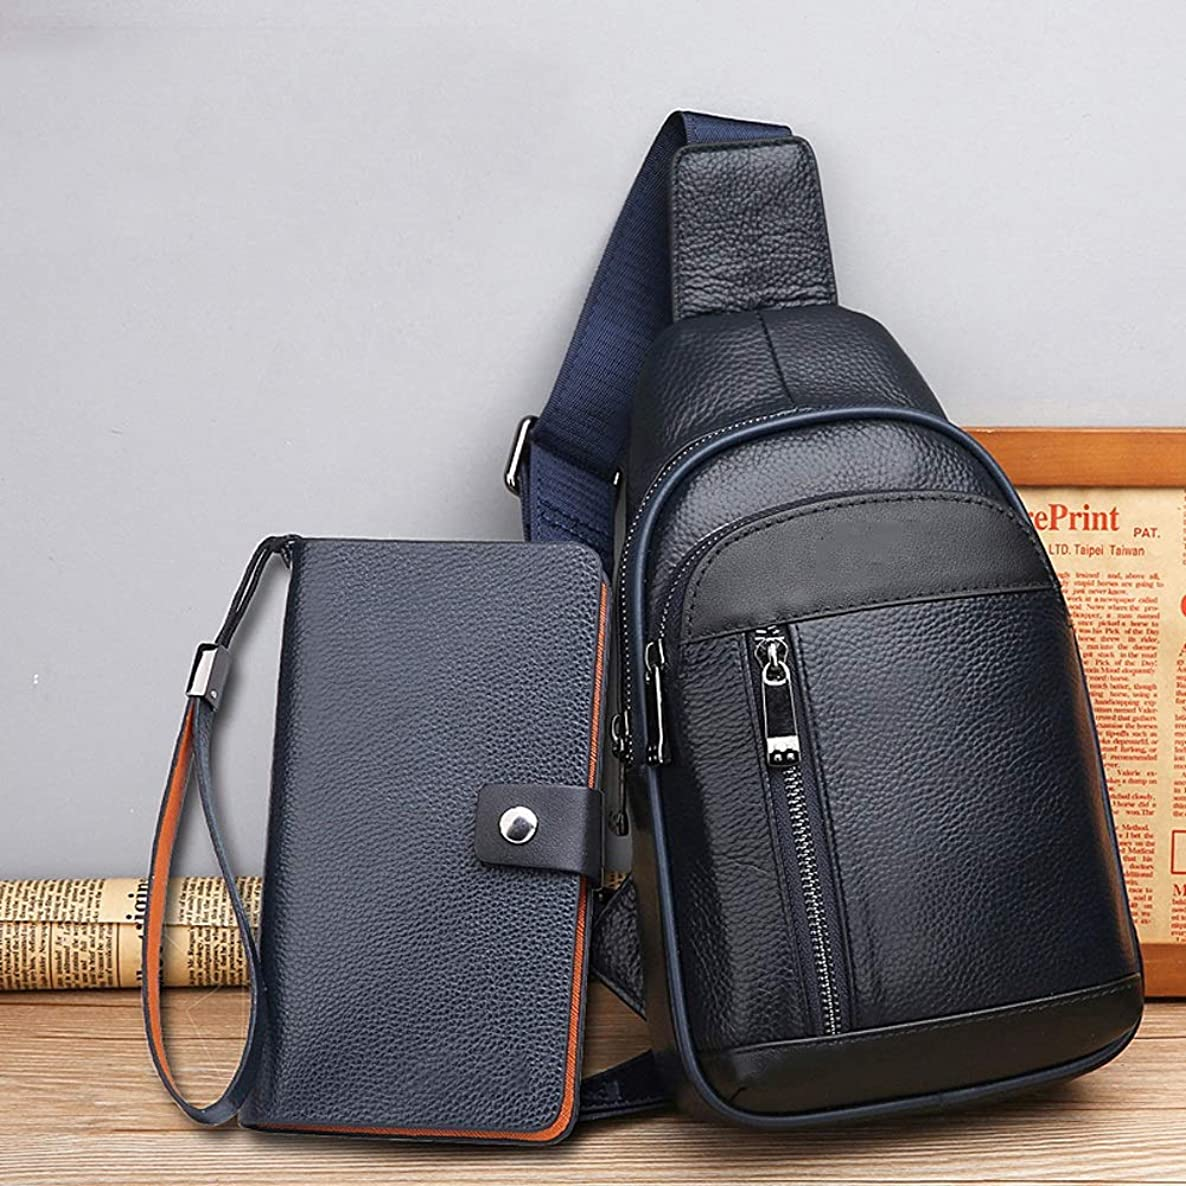 NY-close Leather Chest Bag, Men's Messenger Bag Shoulder Bag, Casual Diagonal Bag Small Backpack, Multi-Functional Business Leisure Sports Walking Outdoor Running (Color : Blue)